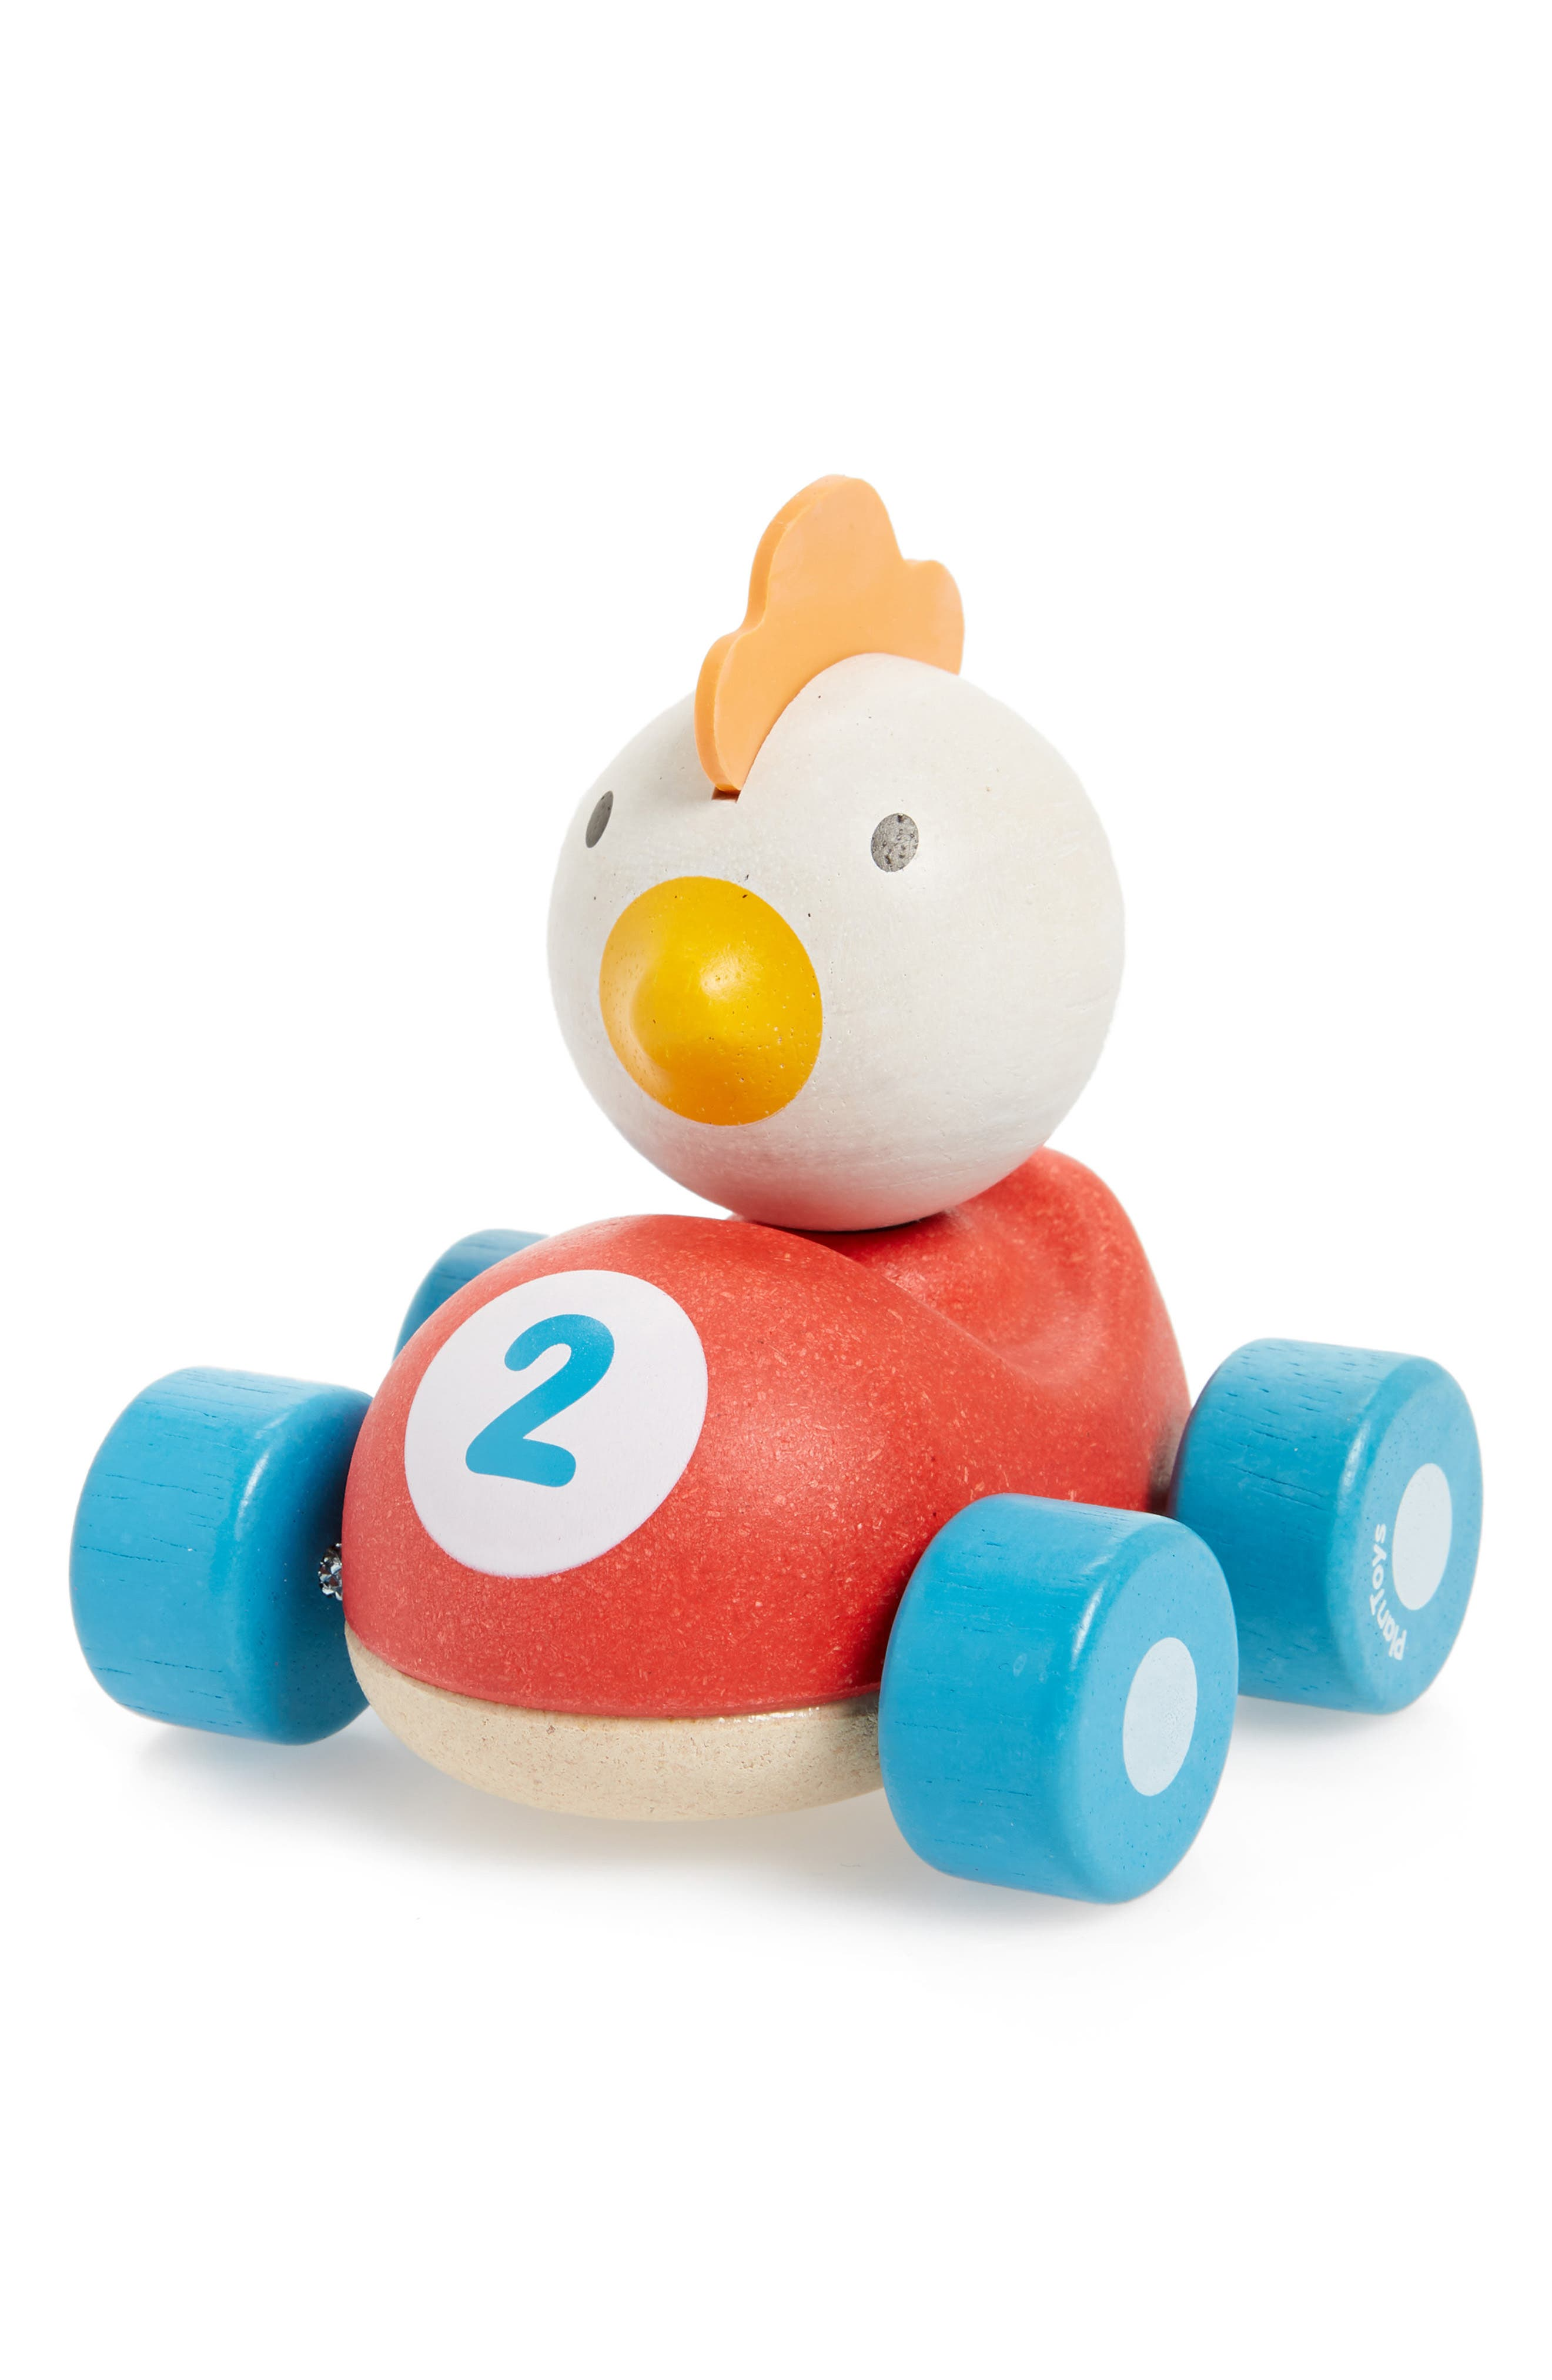 Plan Toys<sup>®</sup> Chicken Racer Rolling Toy,                         Main,                         color, 600